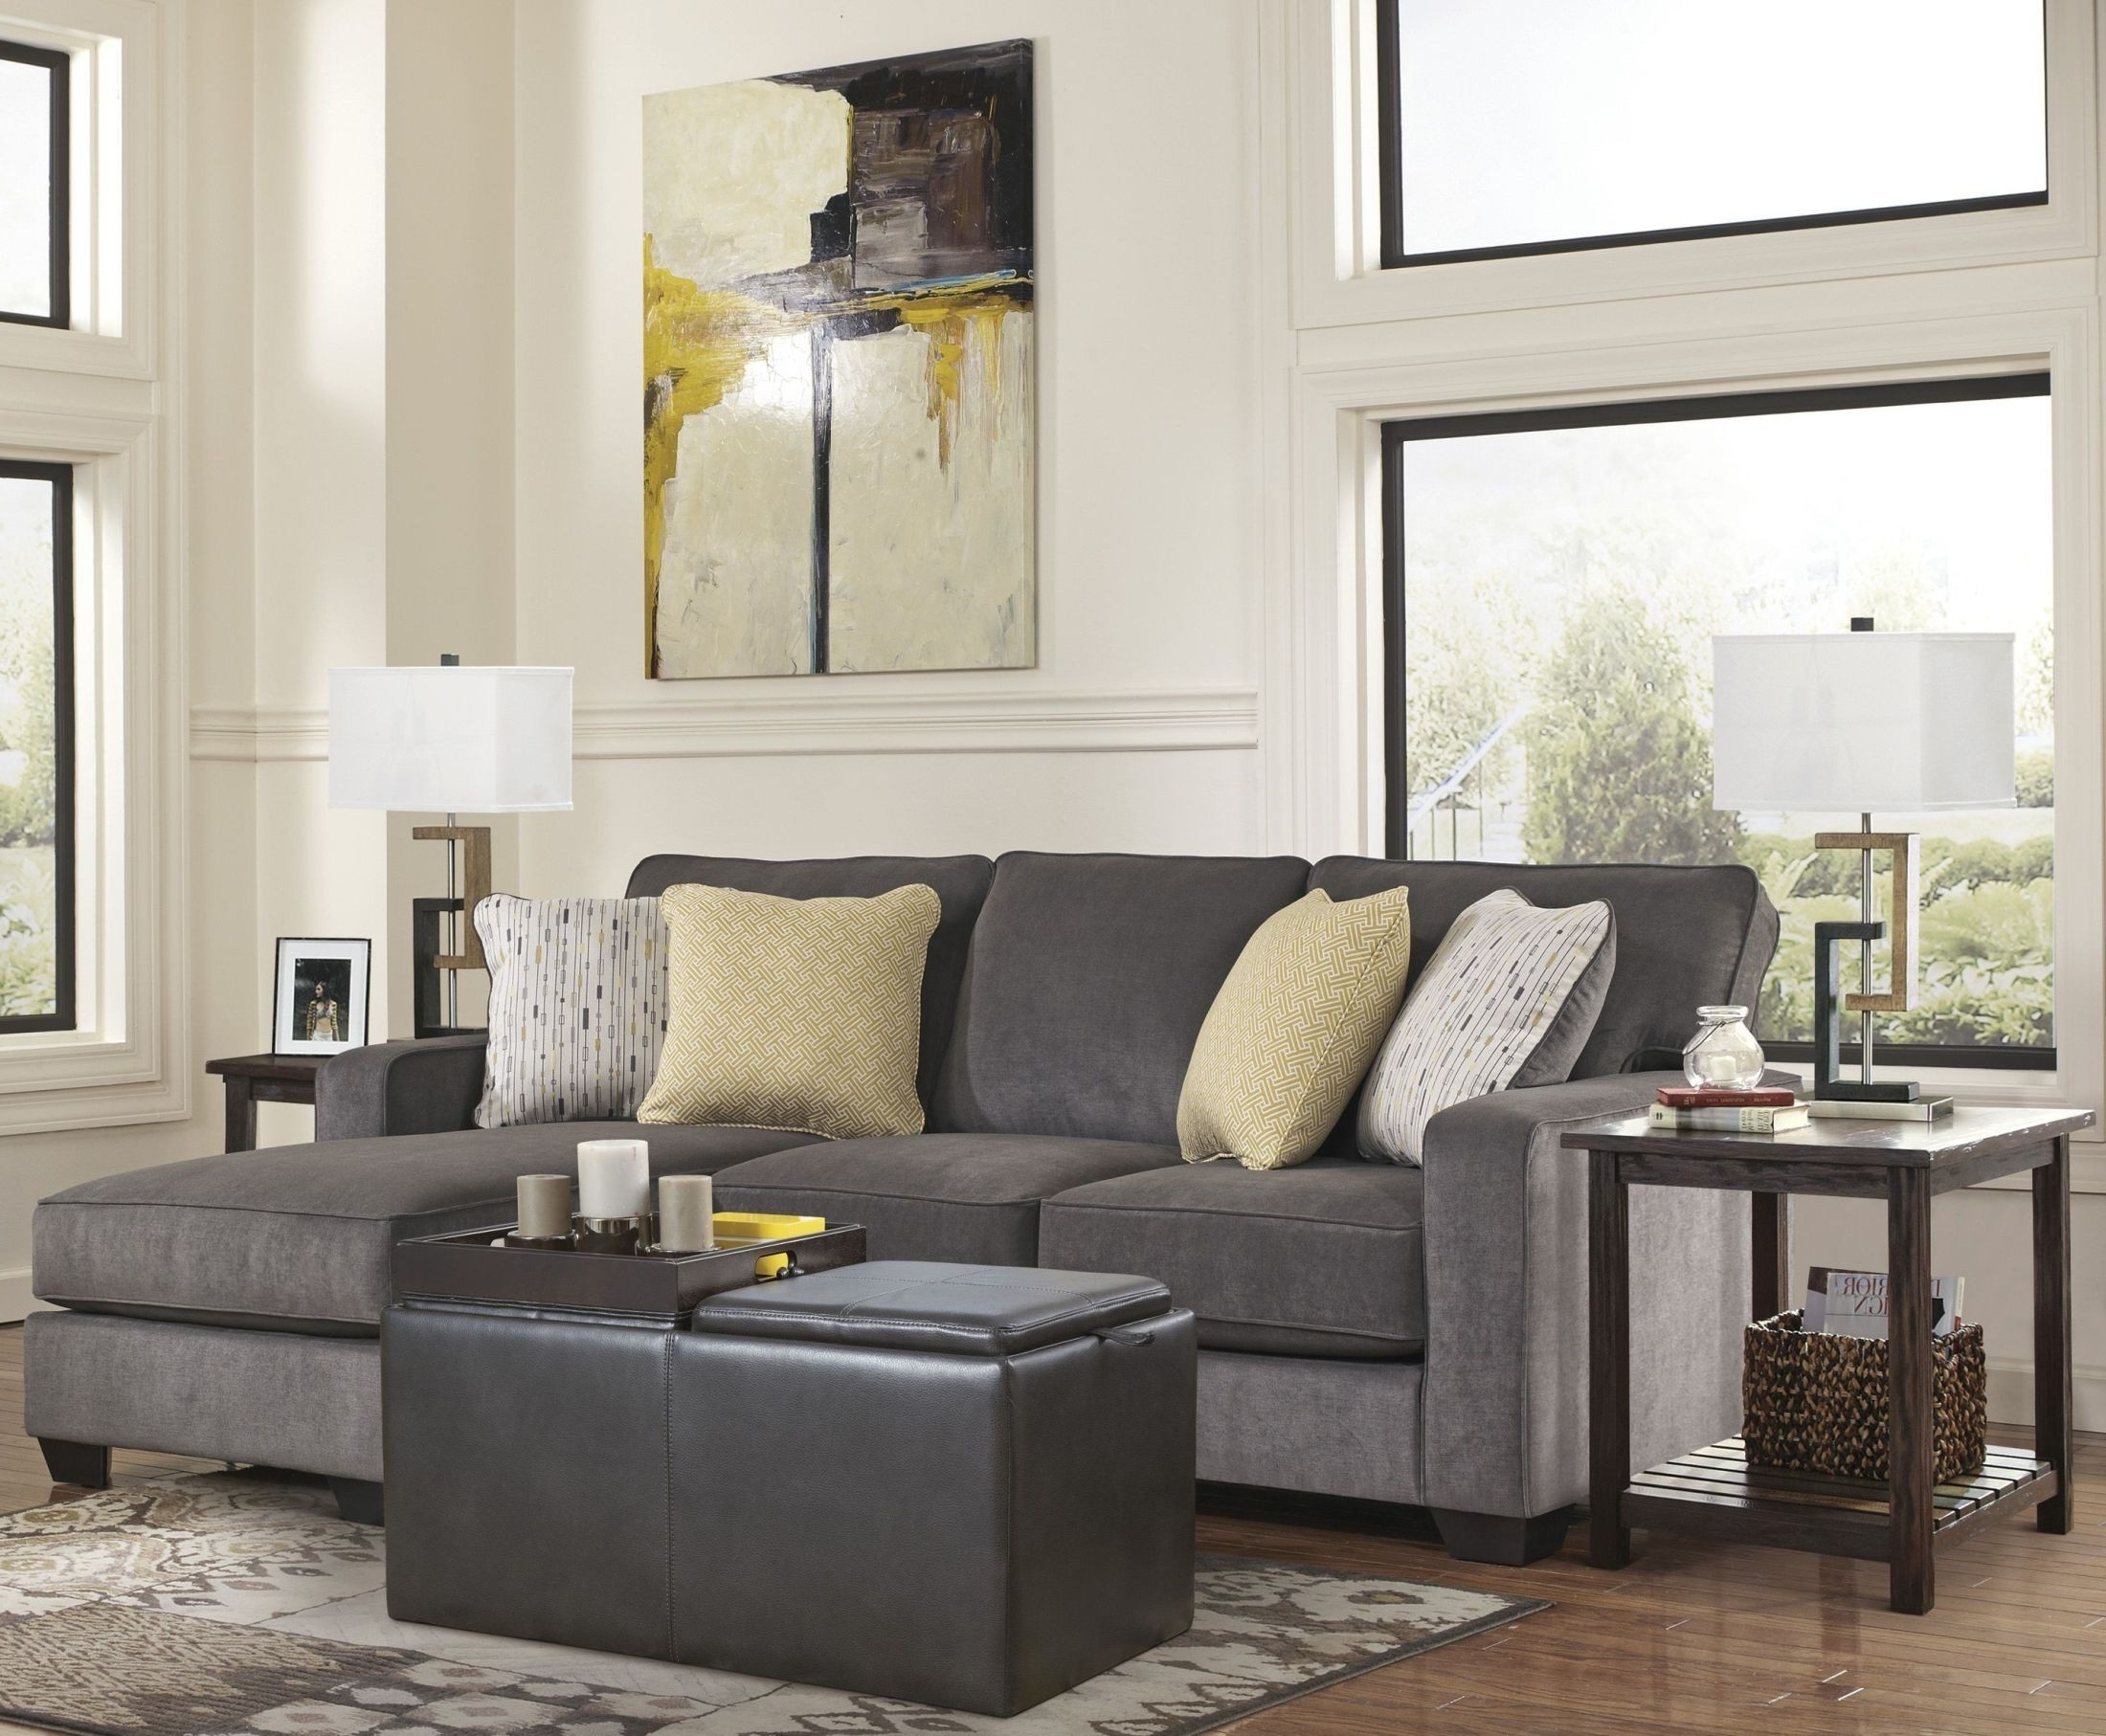 Hodan Marble Sofa With Chaise From Ashley (7970018) (View 12 of 15)